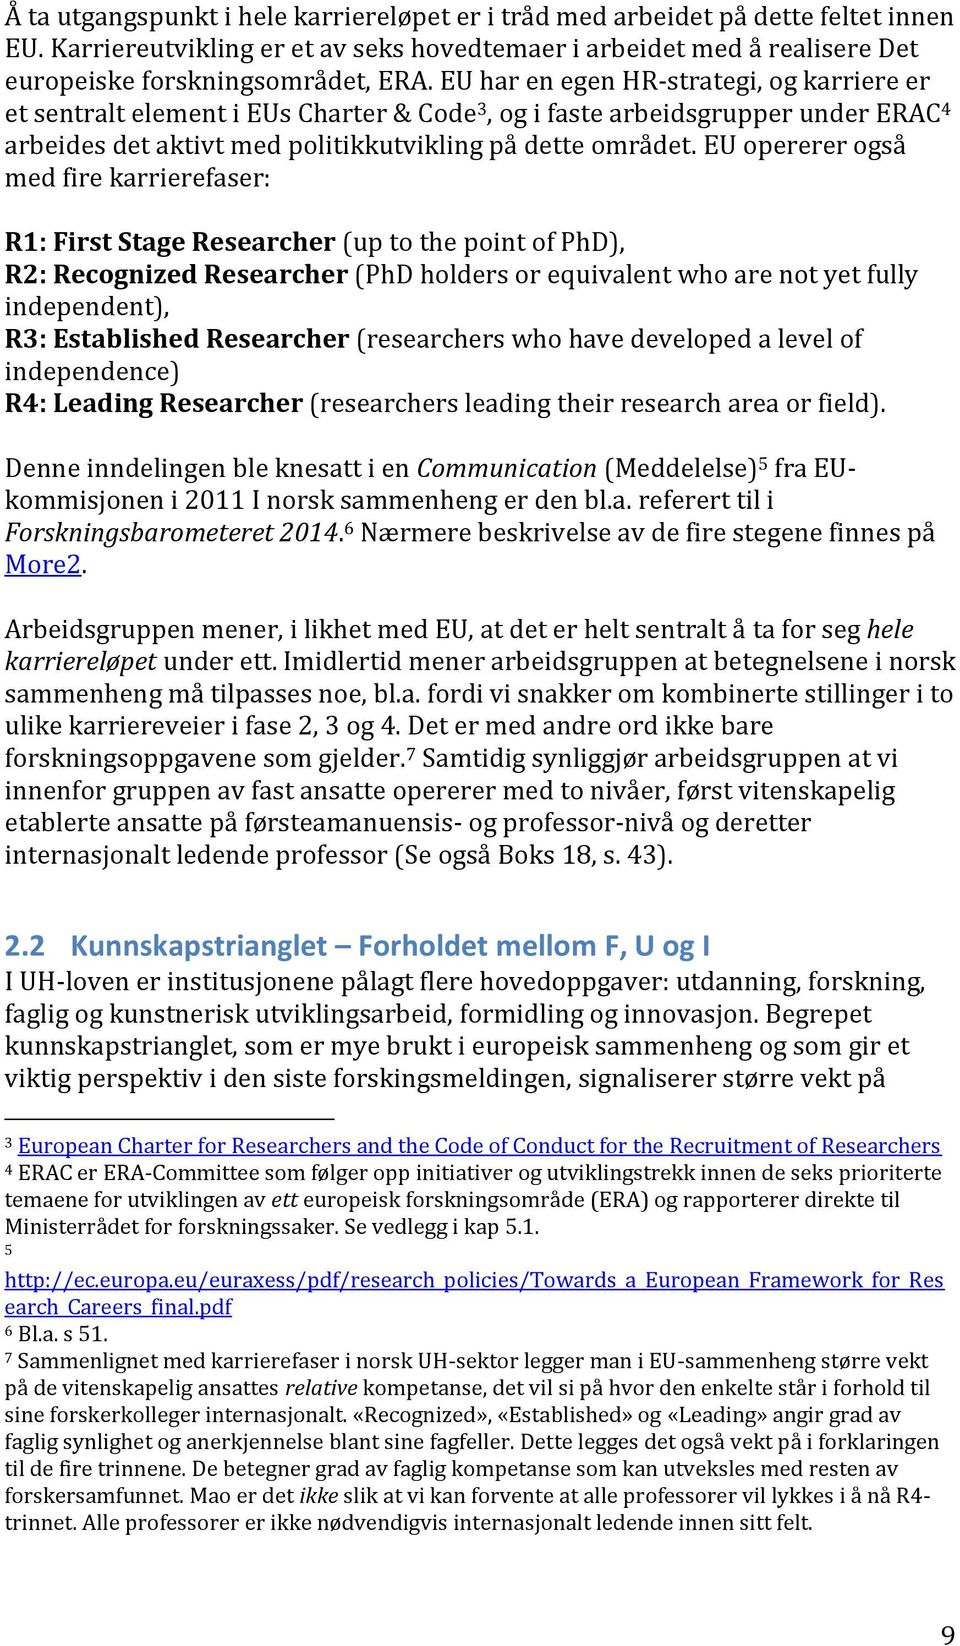 EU opererer også med fire karrierefaser: R1: First Stage Researcher (up to the point of PhD), R2: Recognized Researcher (PhD holders or equivalent who are not yet fully independent), R3: Established